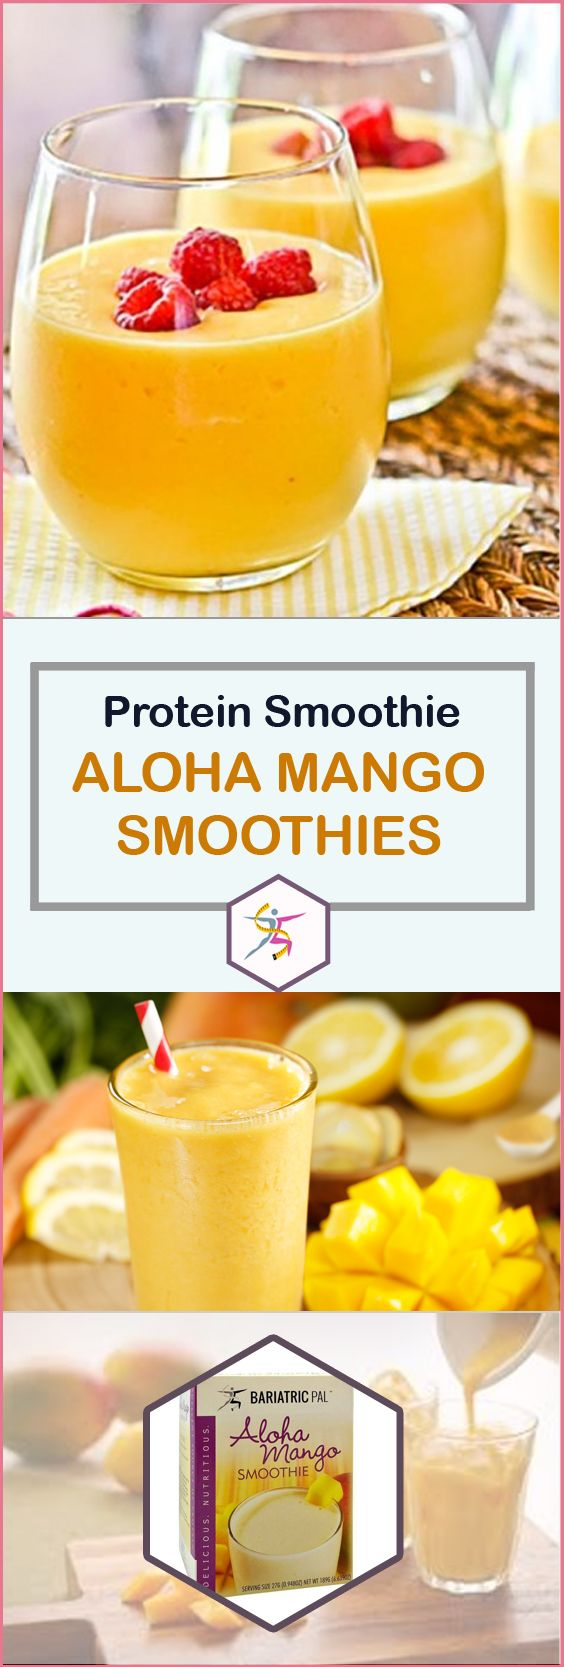 What do you get when you take the delicious taste of a sweet, juicy mango, add protein, and take away most of the sugar? Basically, you get the BariatricPal Protein Smoothie Aloha Mango! It may be the